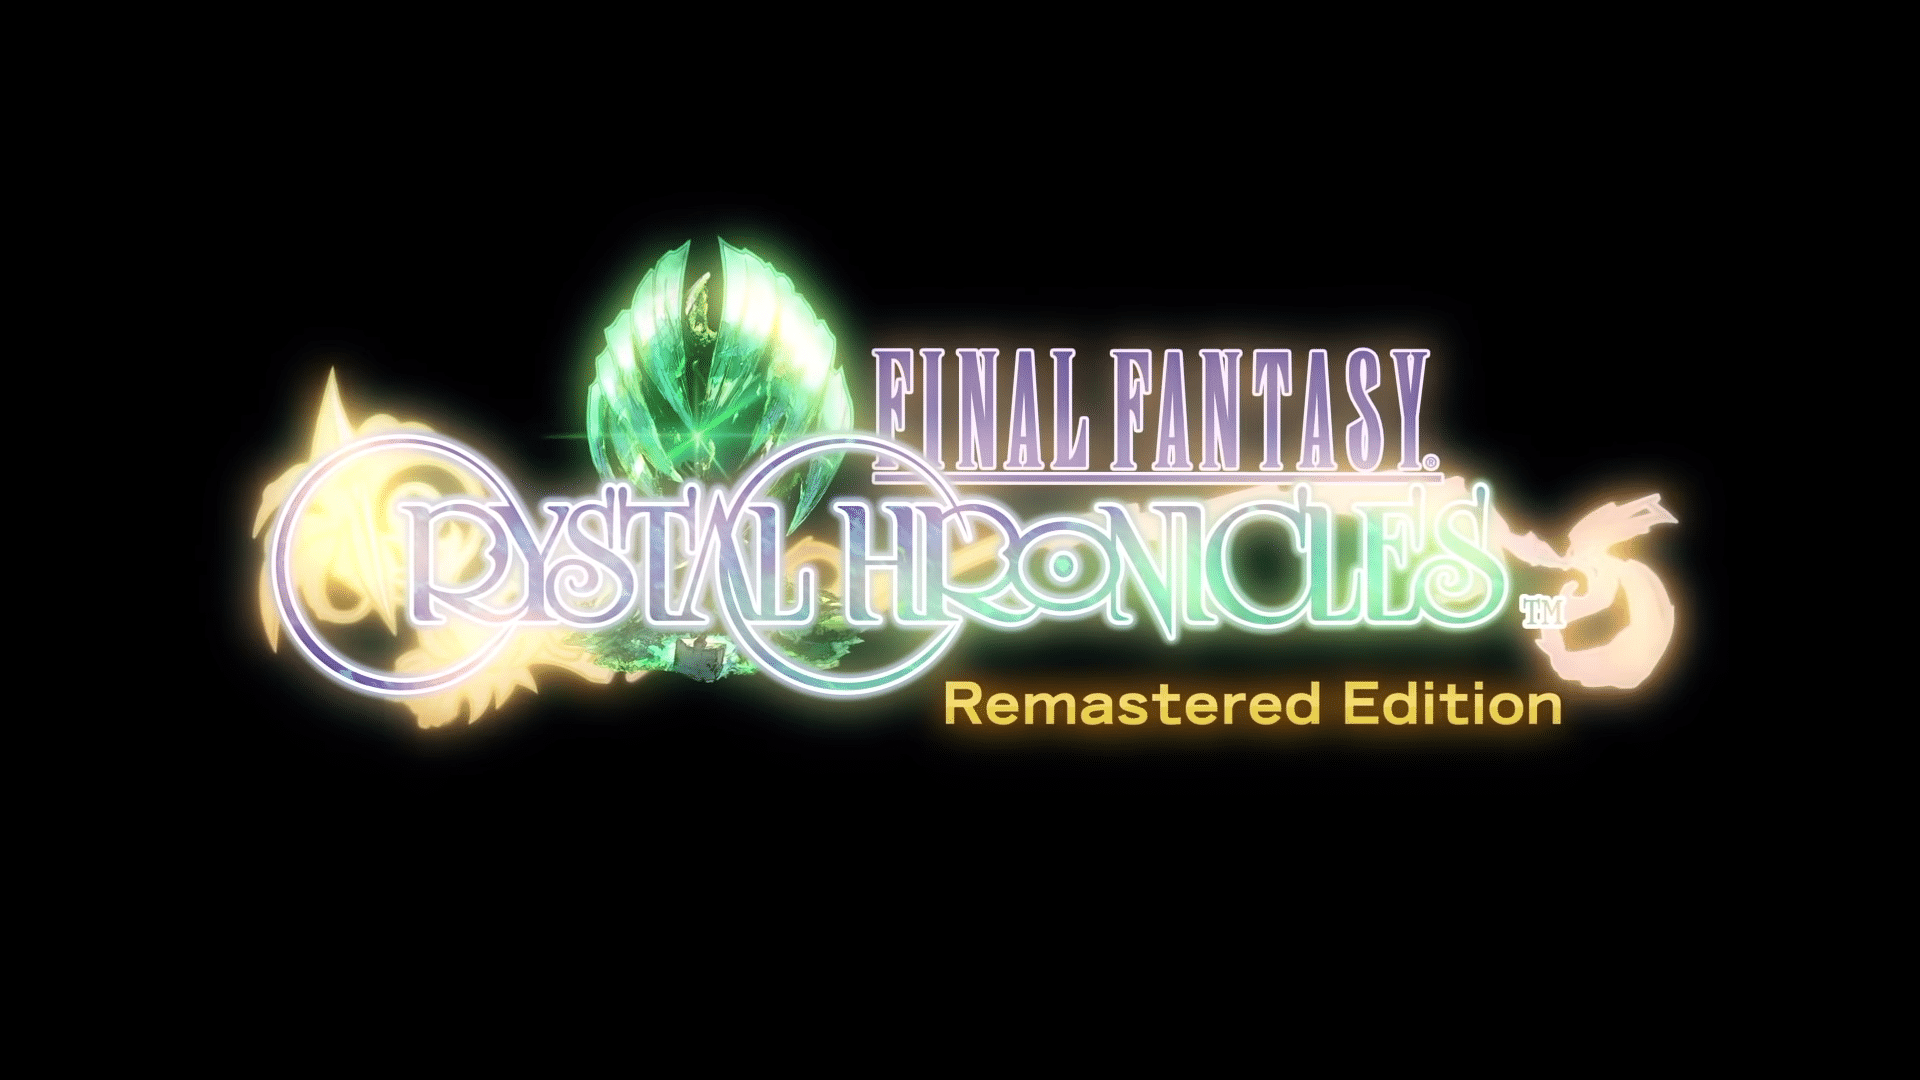 Final Fantasy Crystal Chronicles: Remastered Edition Lite is launching August 27th